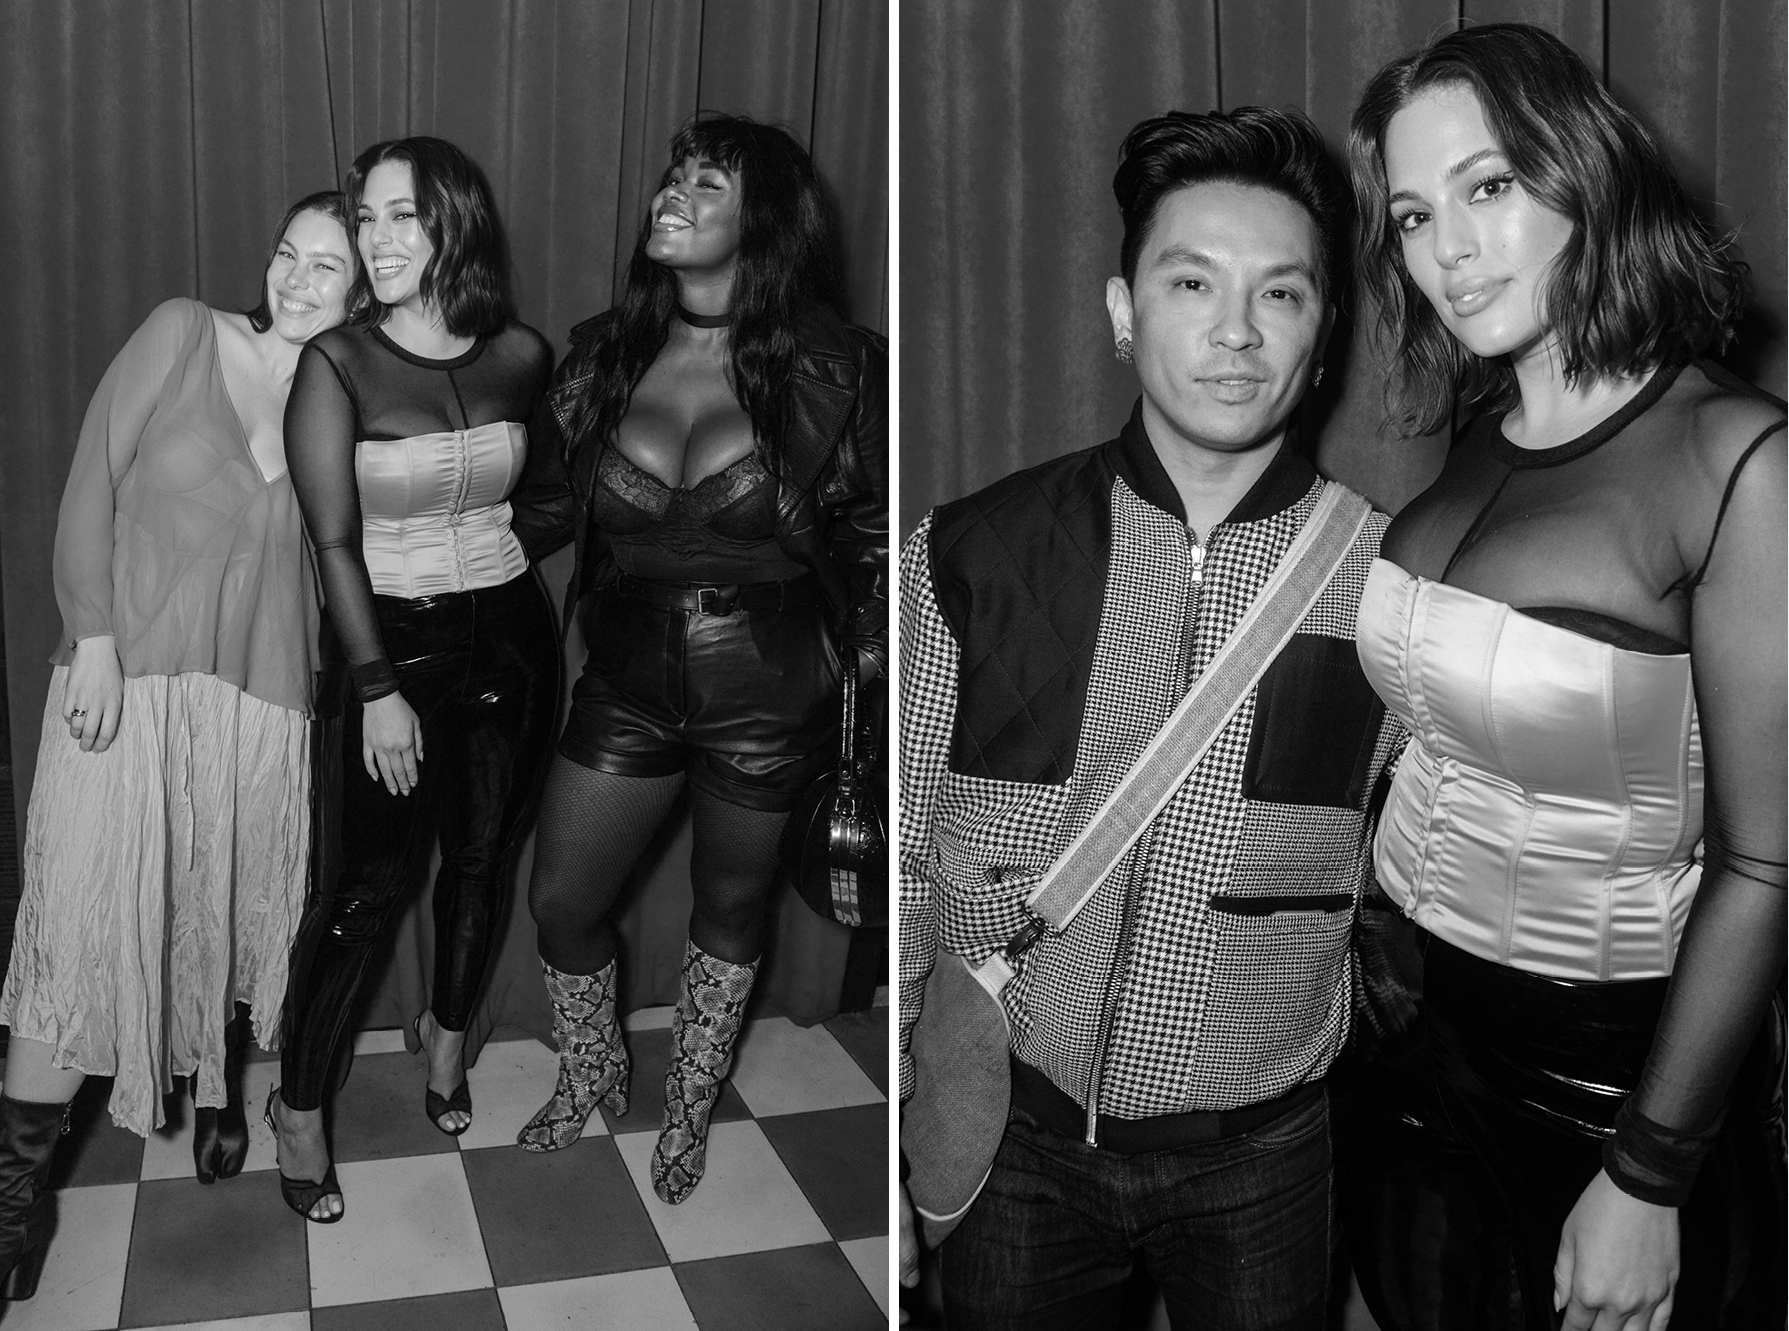 Left: Georgia Pratt, Ashley Graham, and Precious LeeRight: Prabal Gurun and Ashley Graham